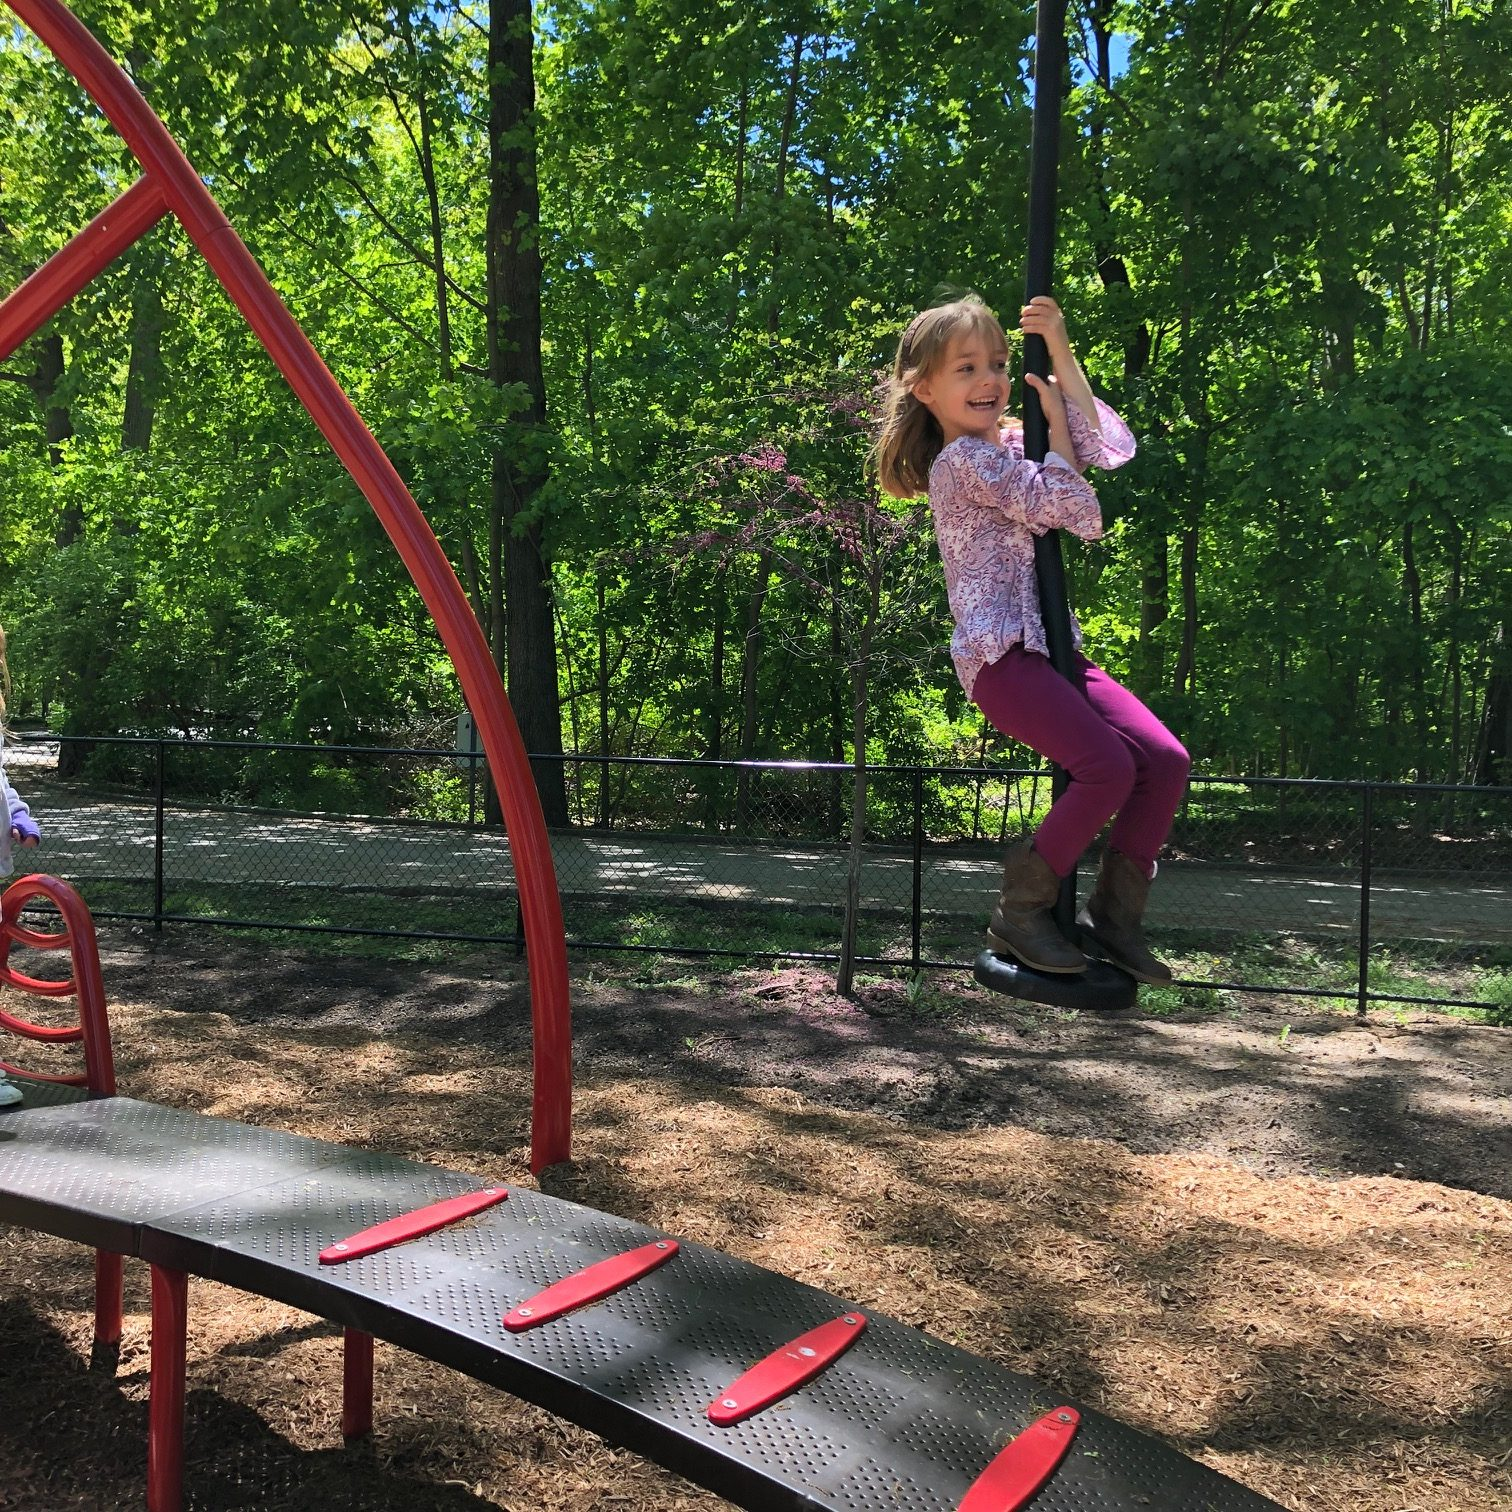 Girl on zip line in playground